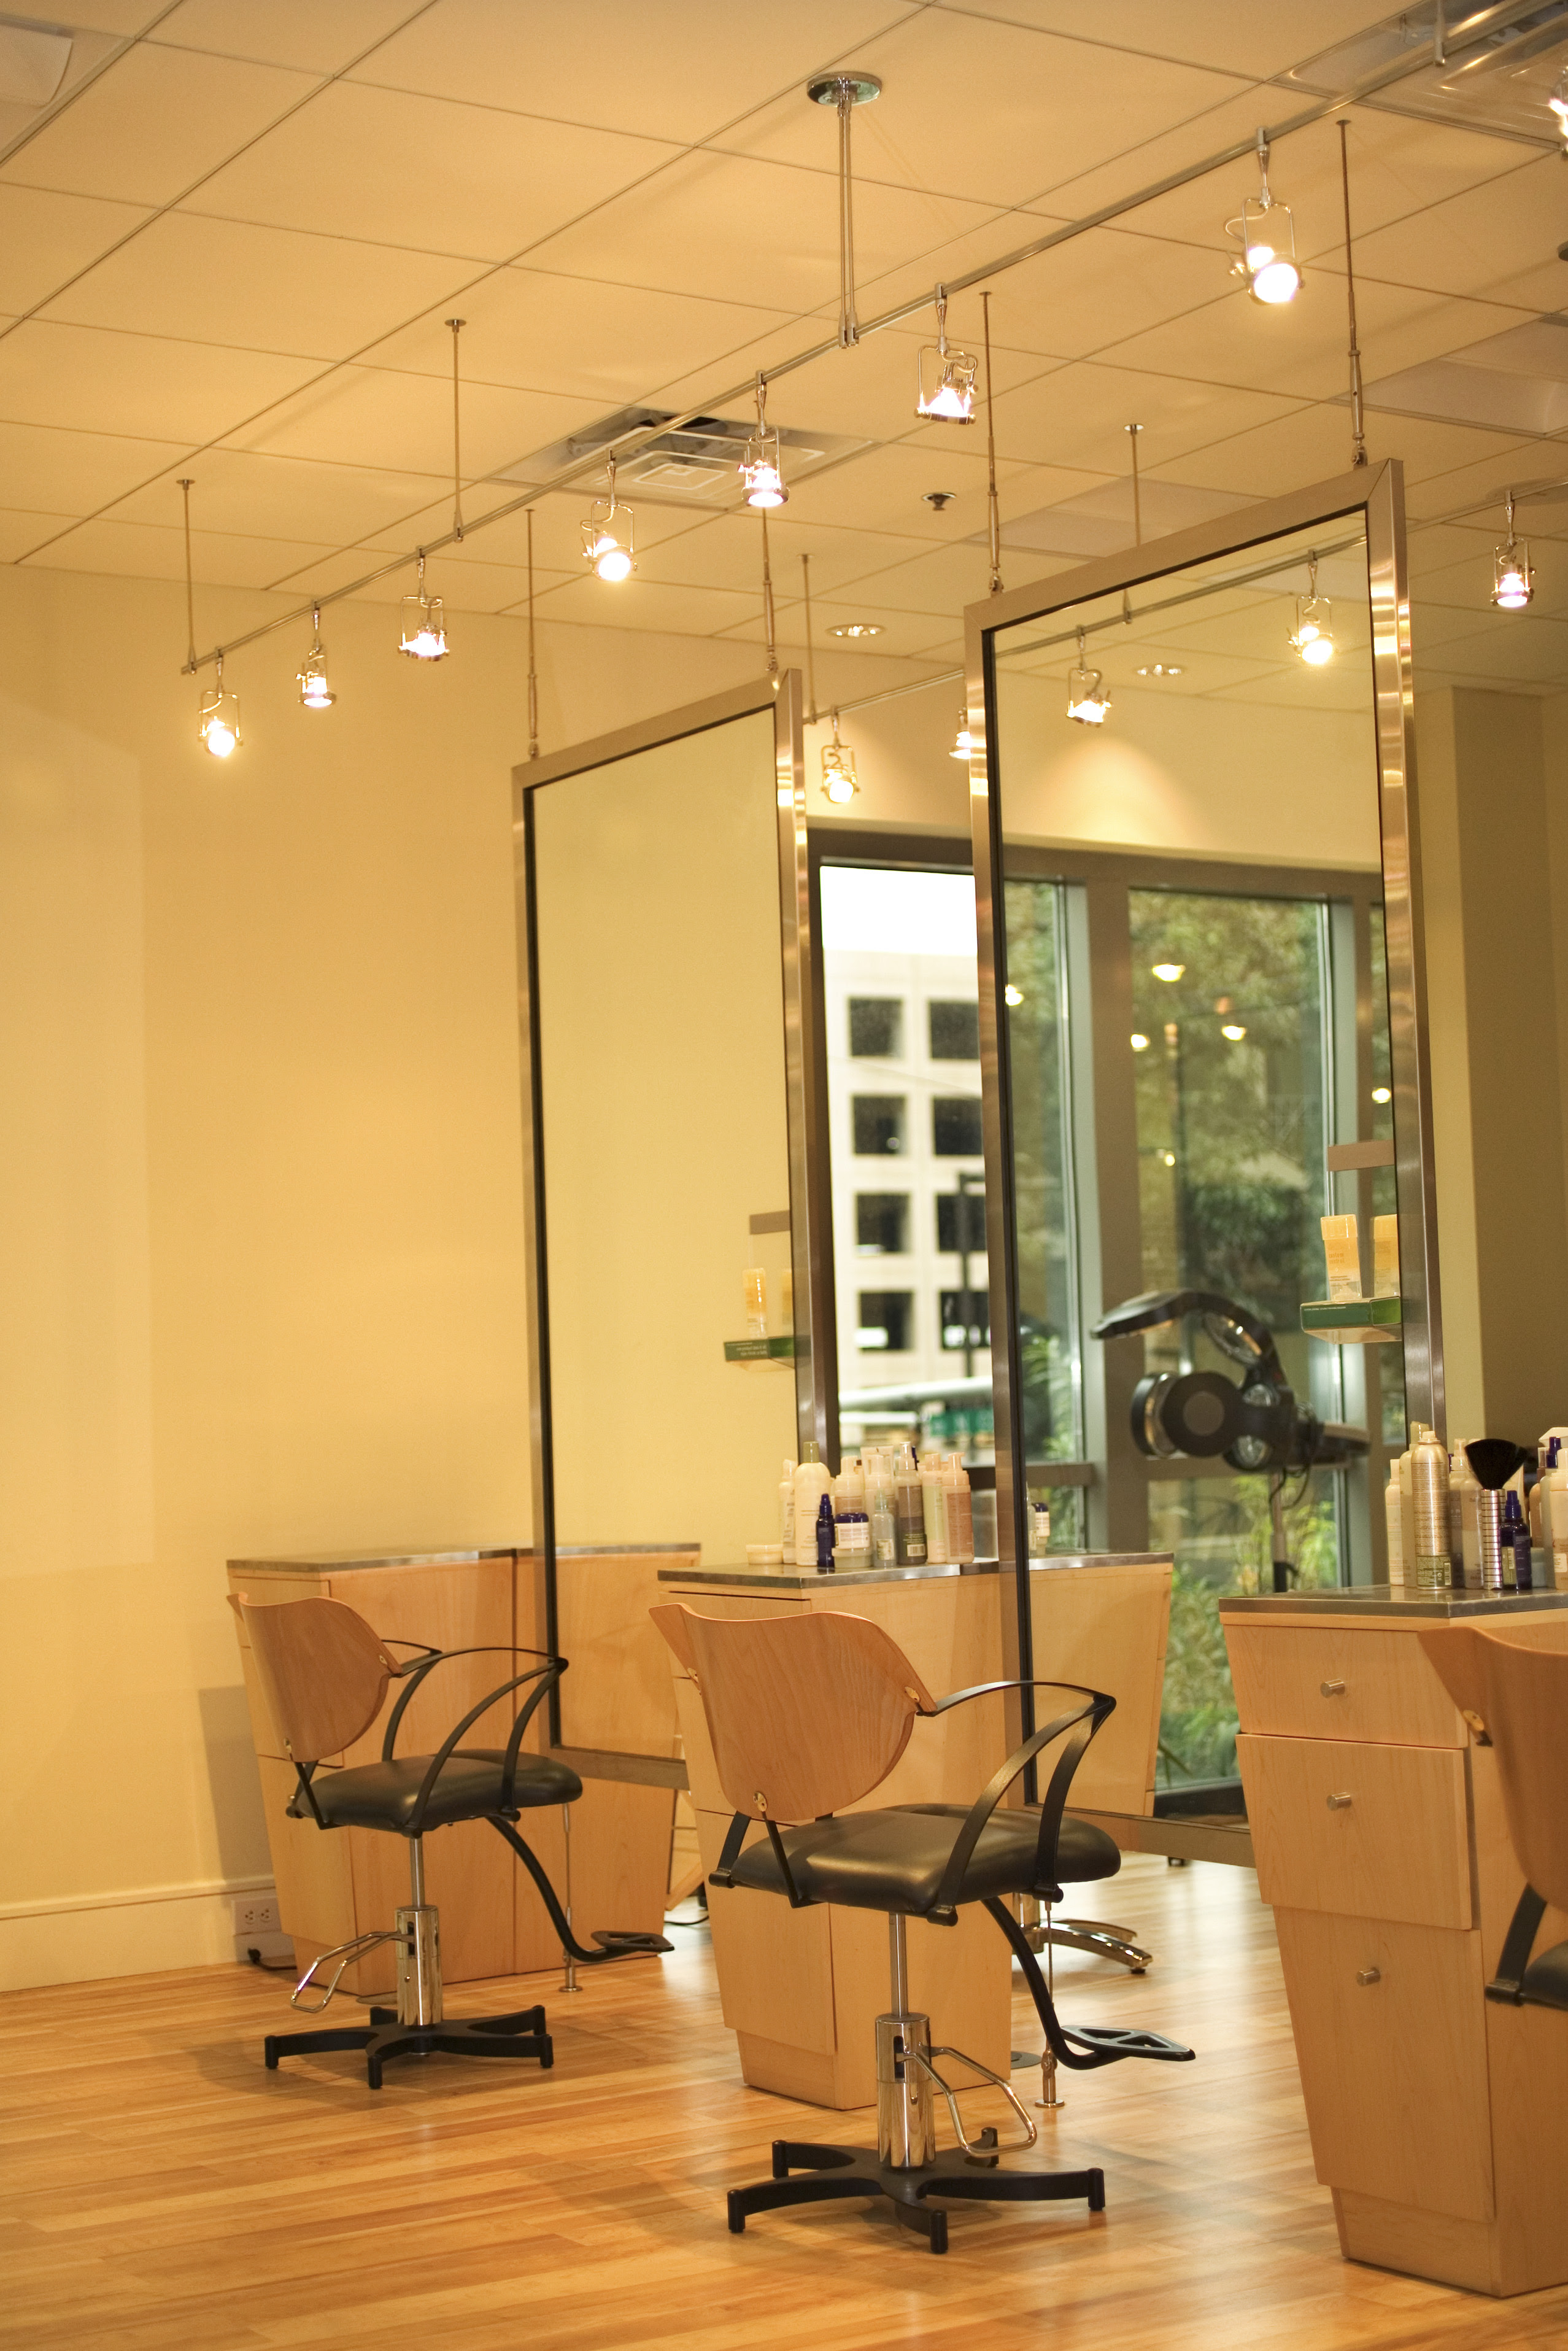 Dos Donts Of Decorating A Hair Salon Your Business